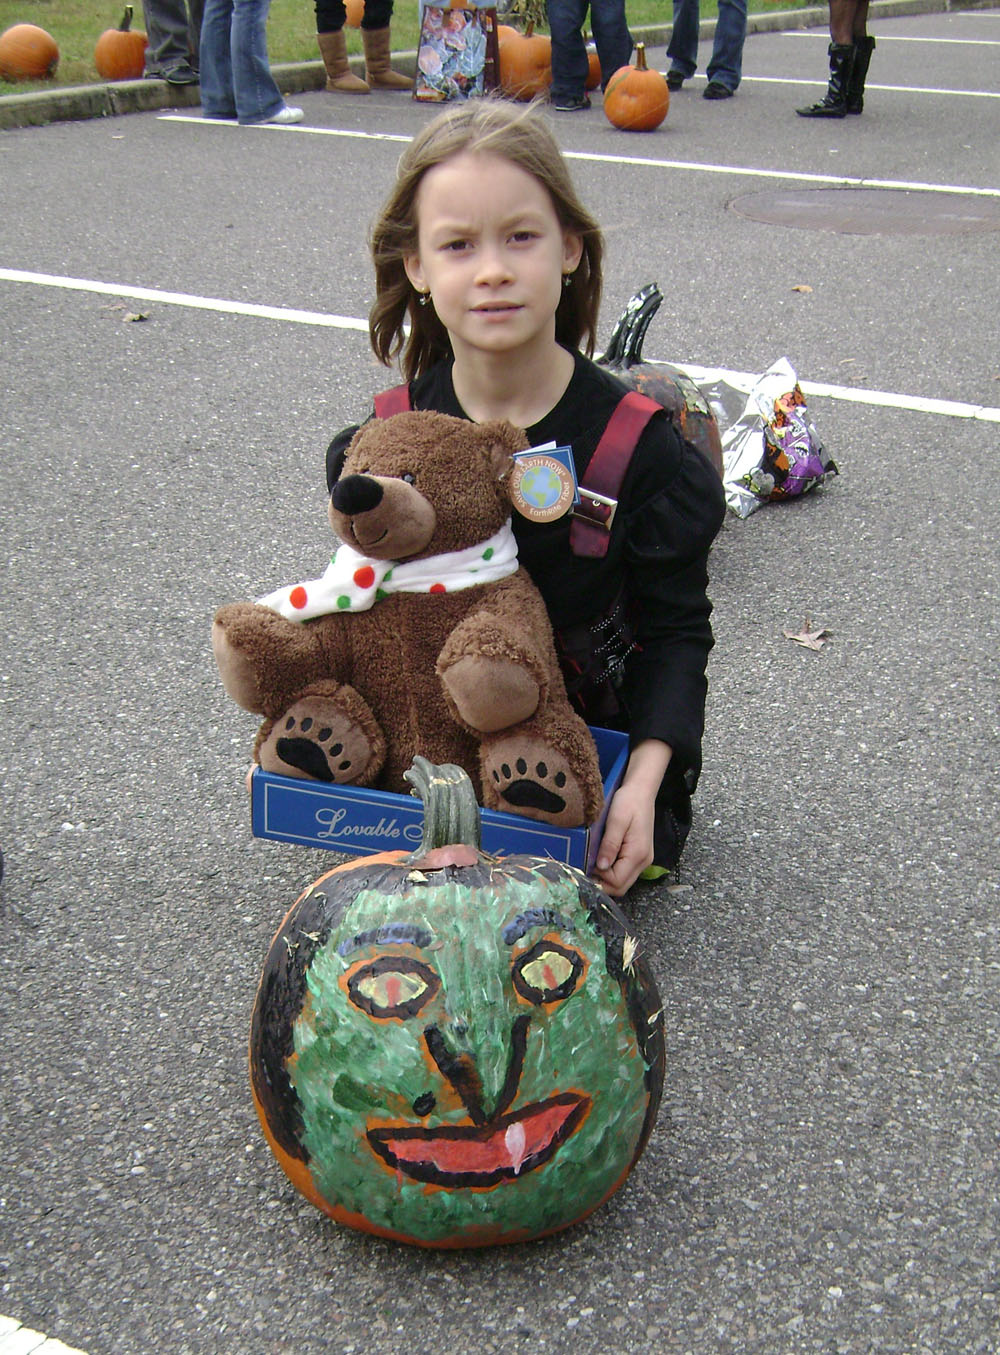 Eight-year-old Niaomi Gatley, winner of the pumpkin coloring contest, poses with her pumpkin and her prize at the Village of Islandia's 5th annual Craft Fair and Pumpkin Fest.